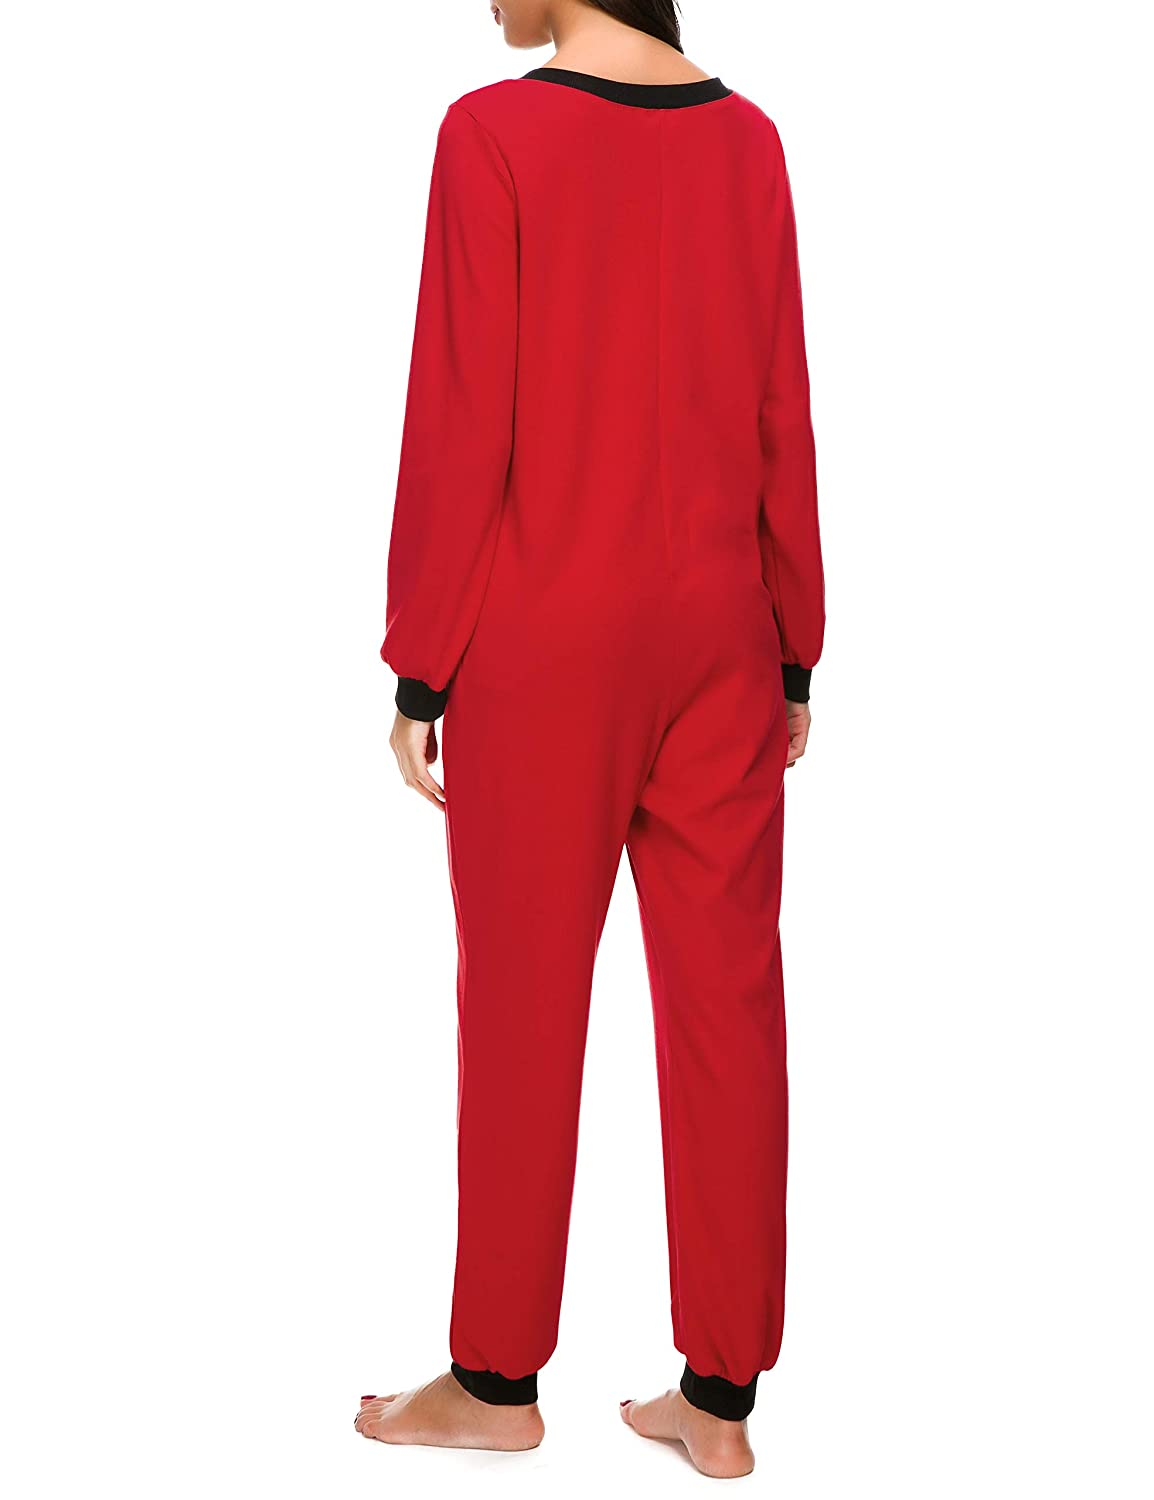 468ff0a30d Amazon.com  M-anxiu Onesie Womens Non Footed Pajamas One Piece Adult  Sleepwear Jumpsuit S-XXL  Clothing